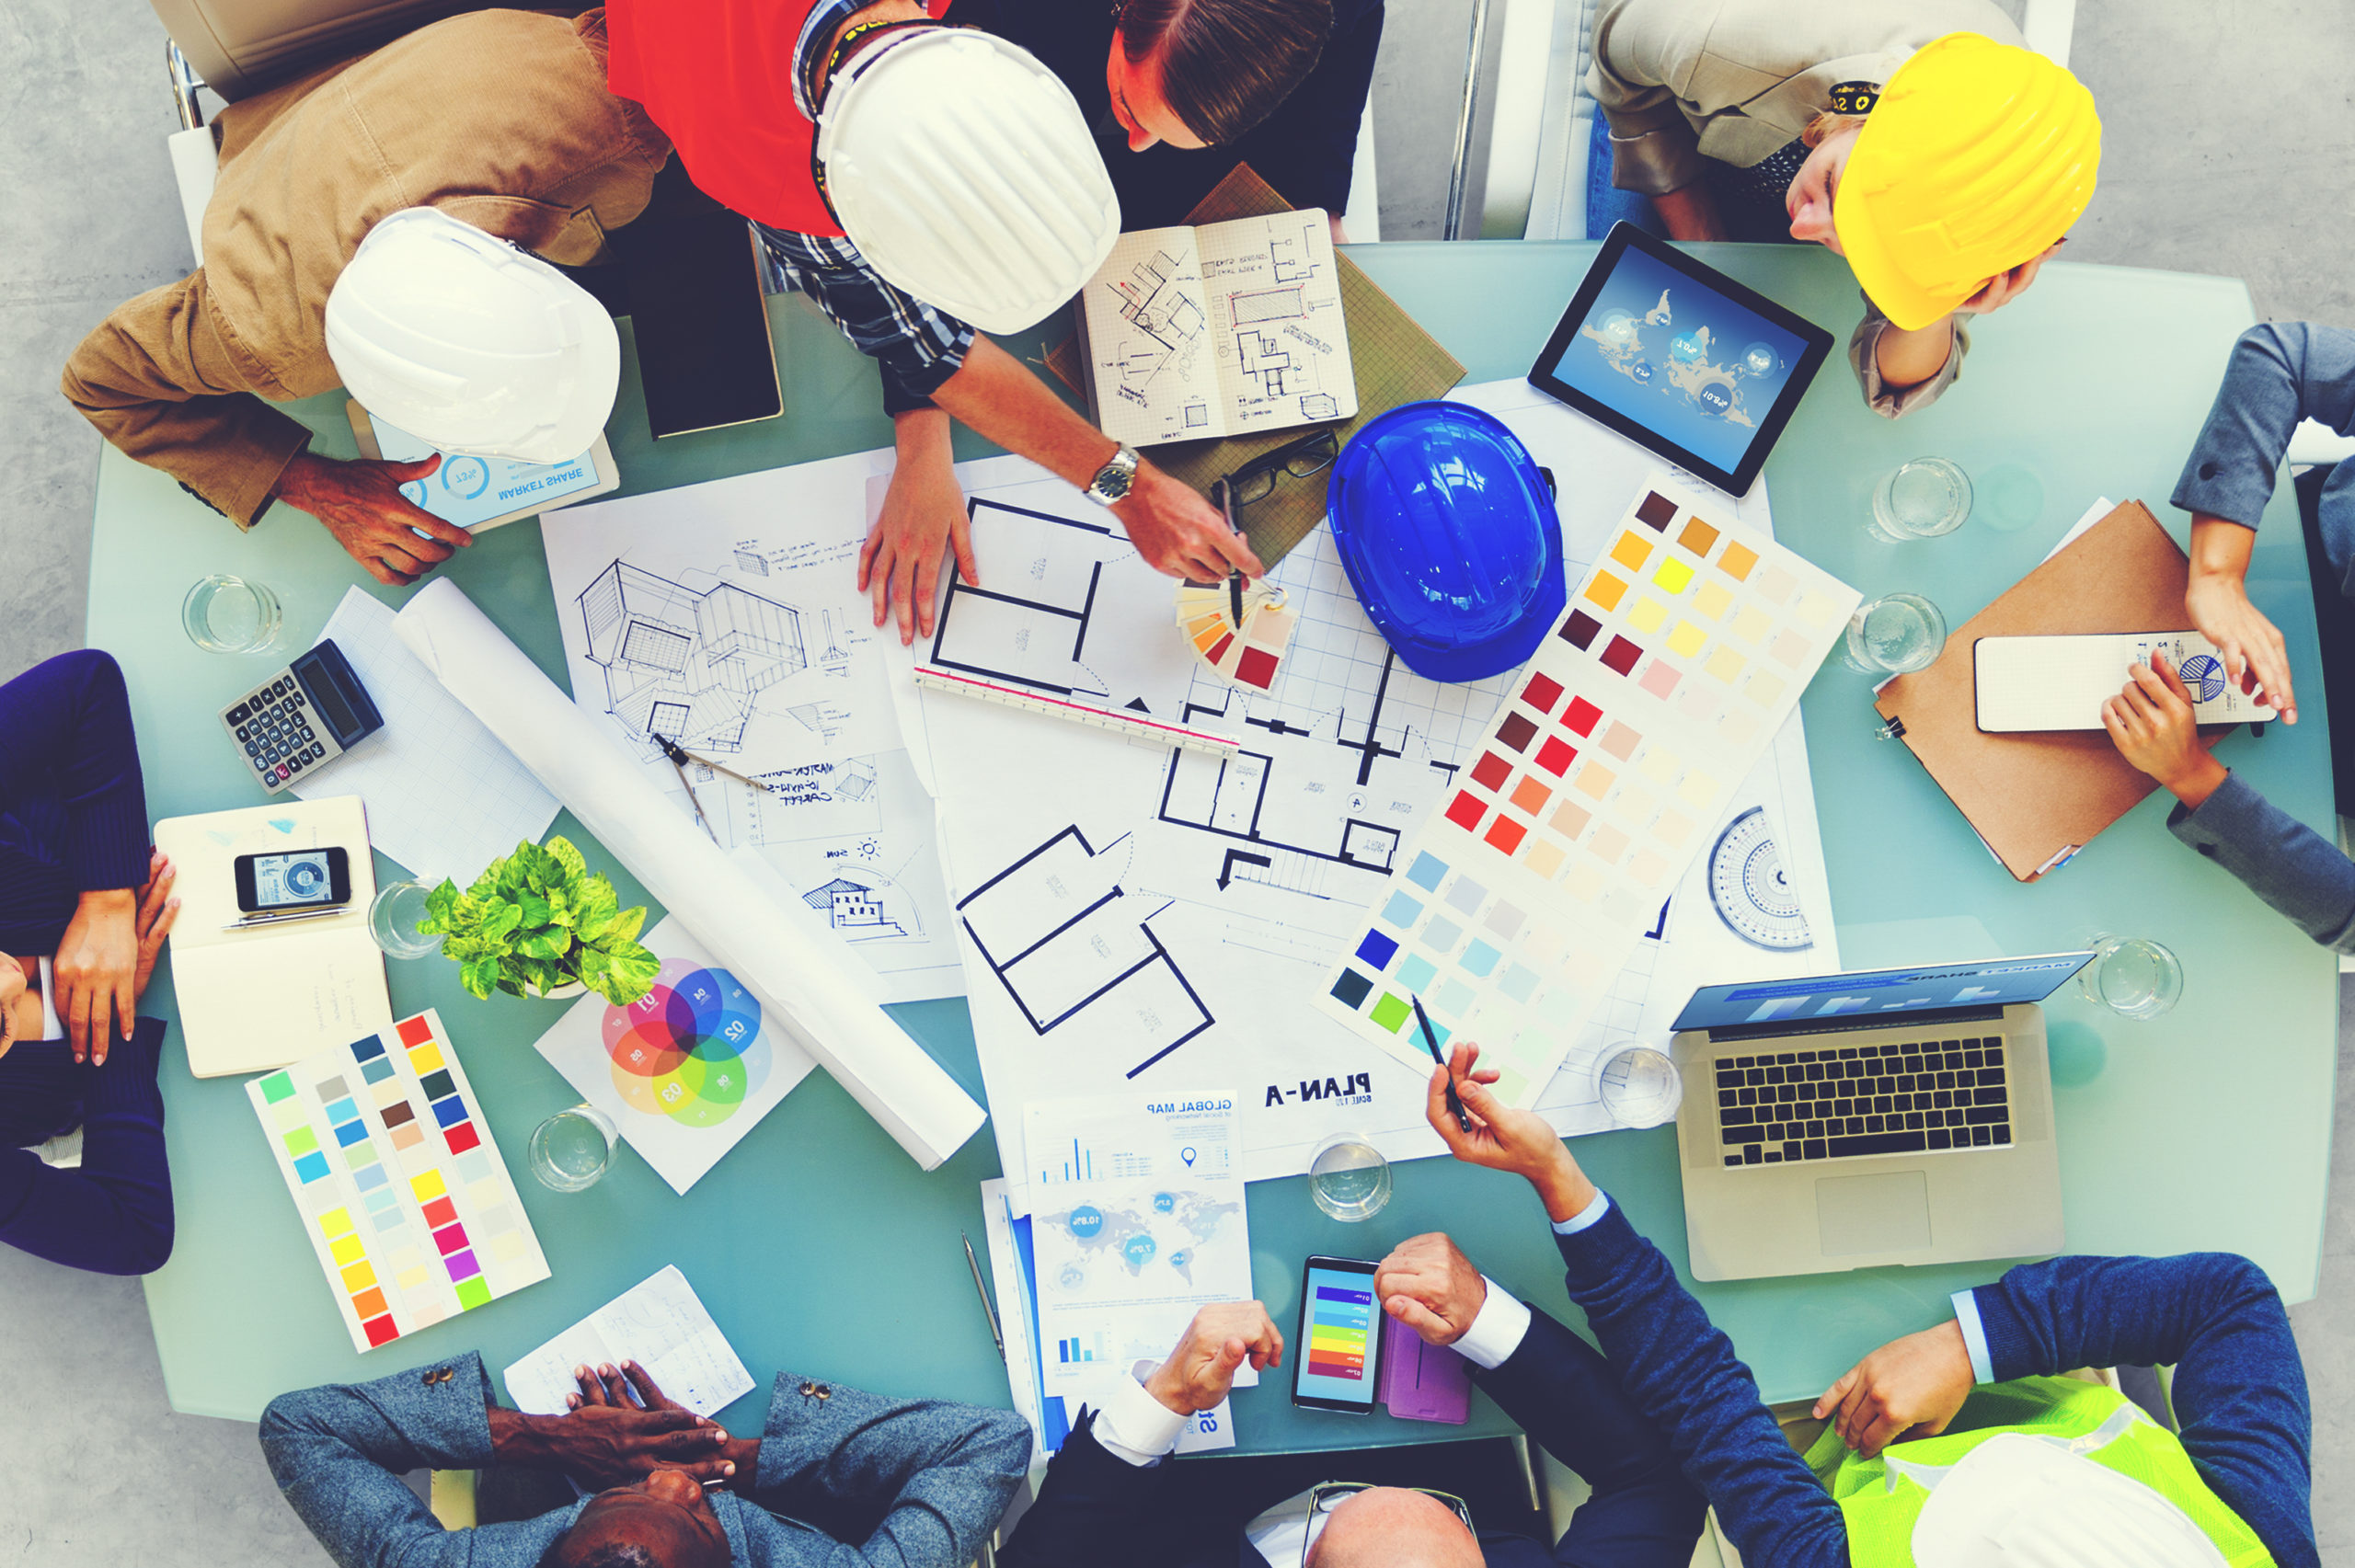 Architects and Designers Working in the Office Concept